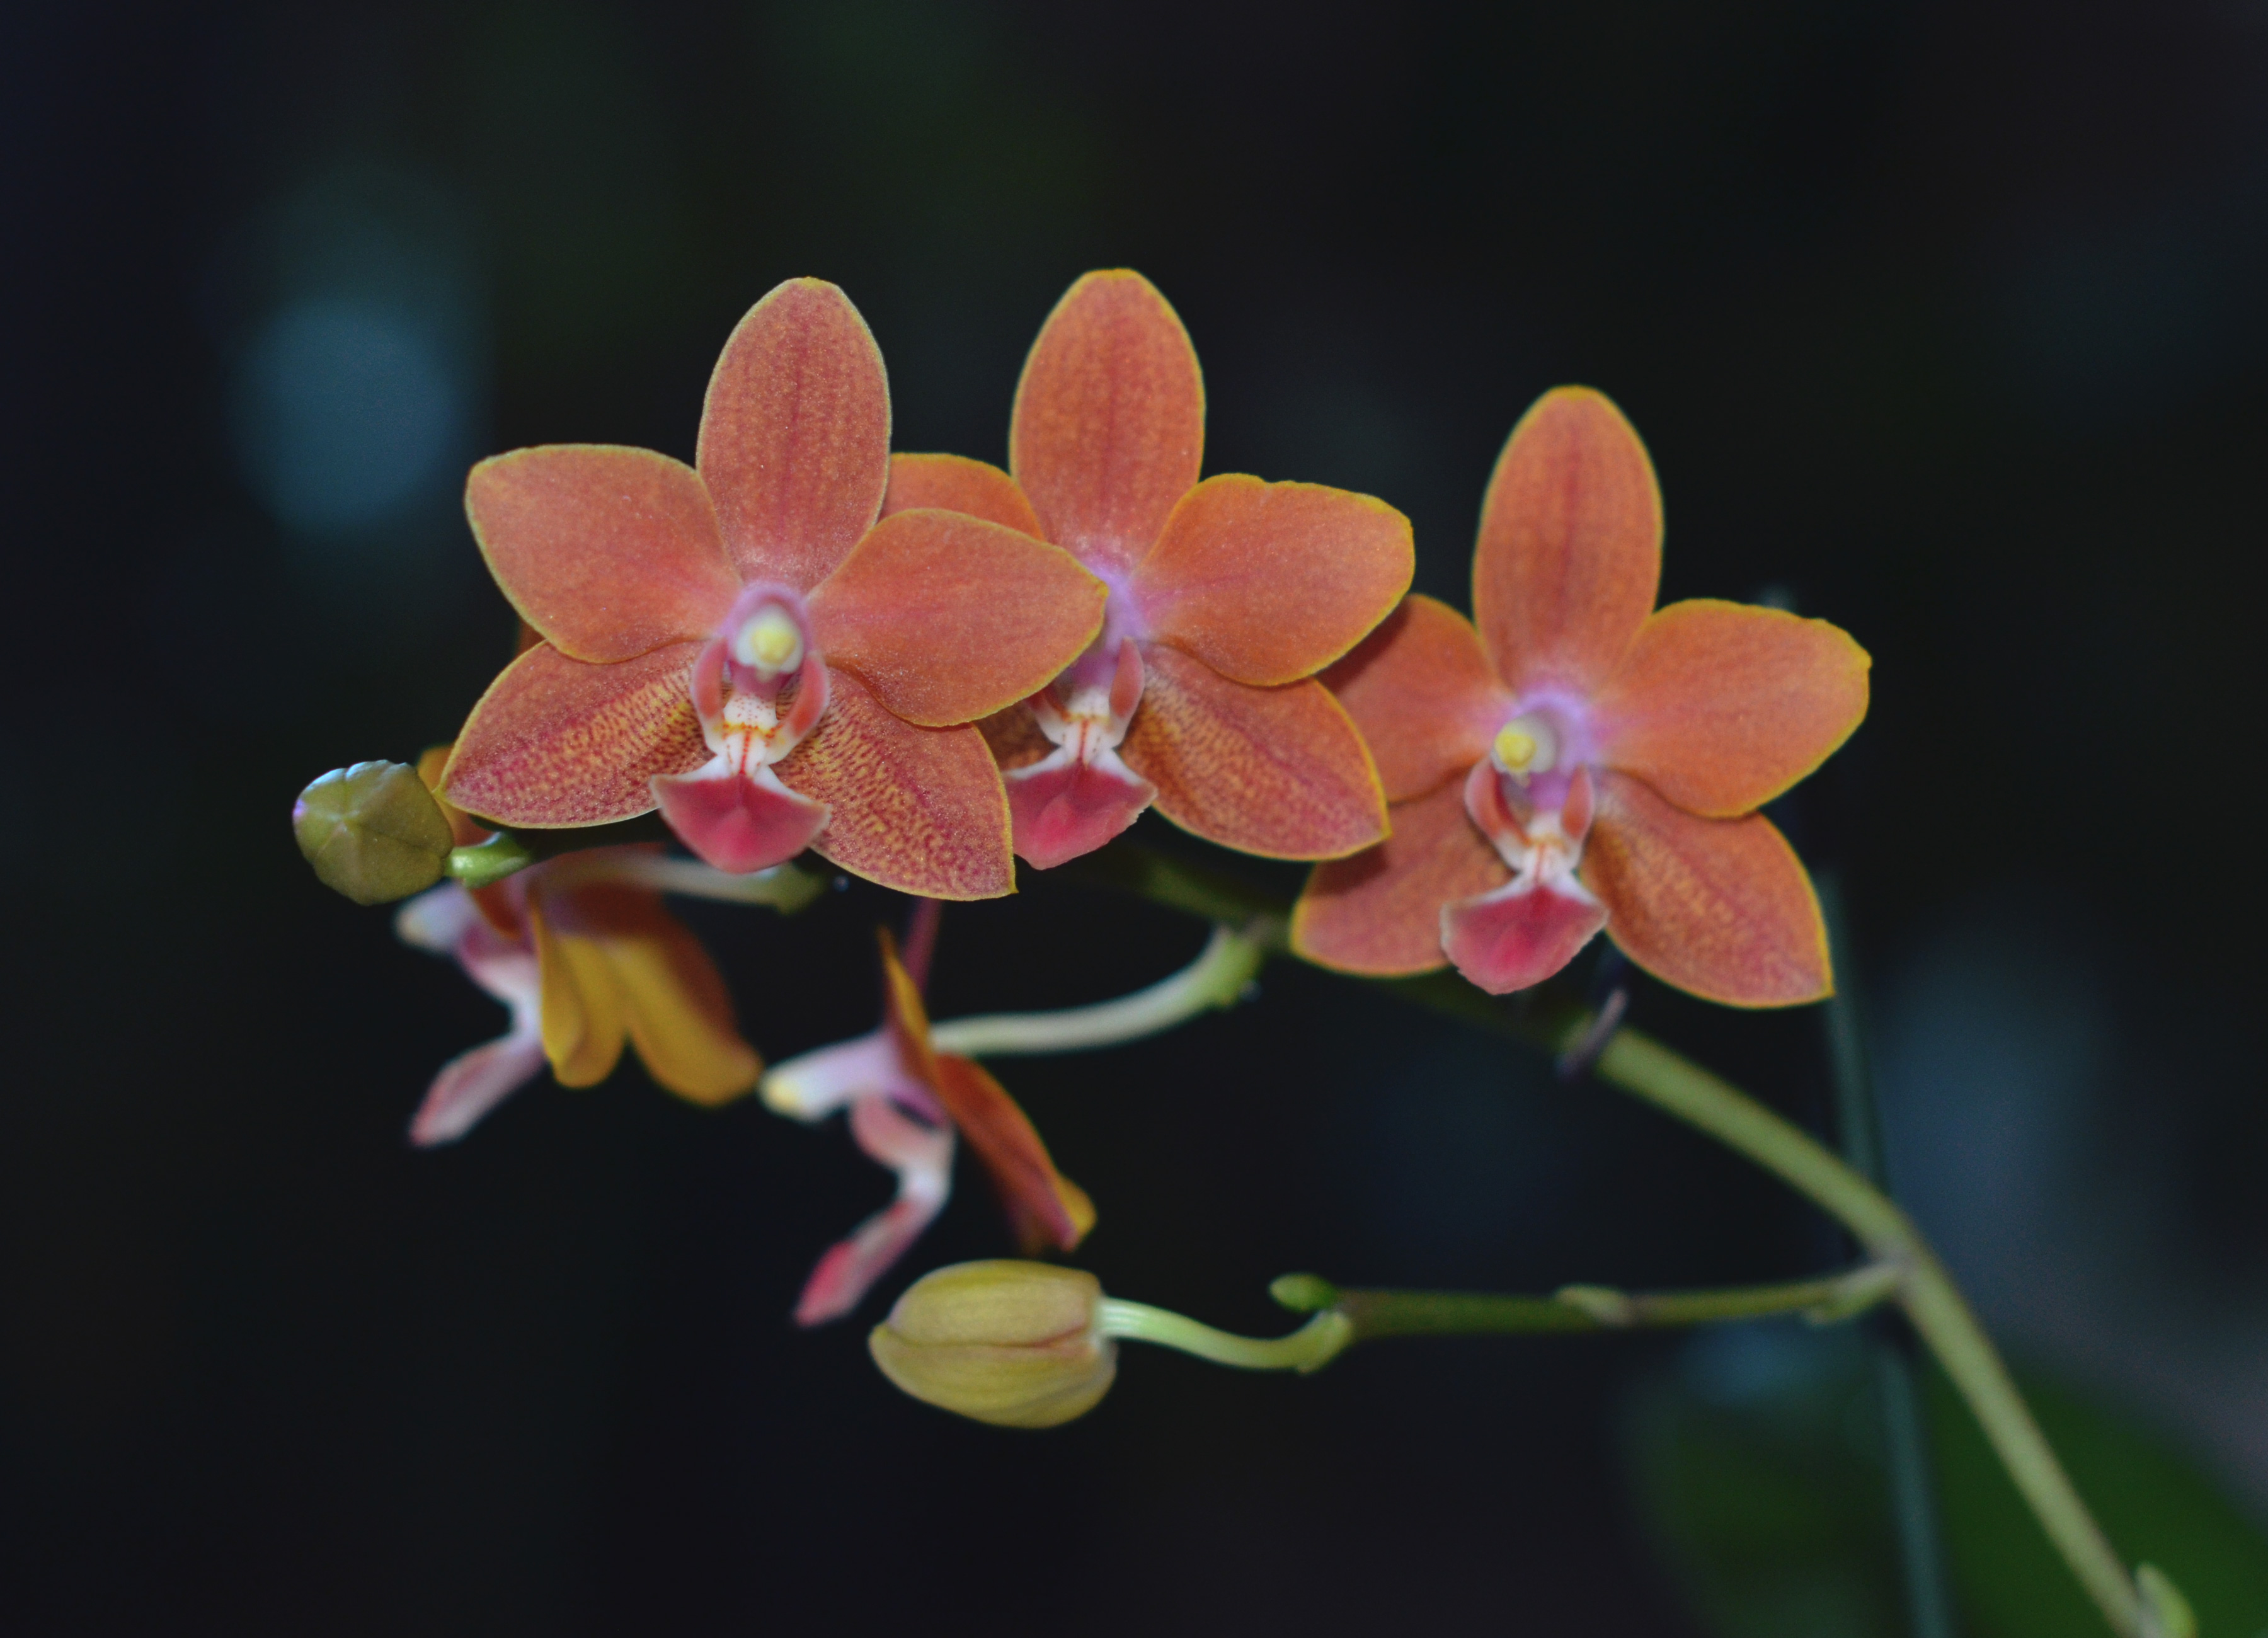 Phalaenopsis Care Culture And Tips To Keep Your Orchid Reblooming